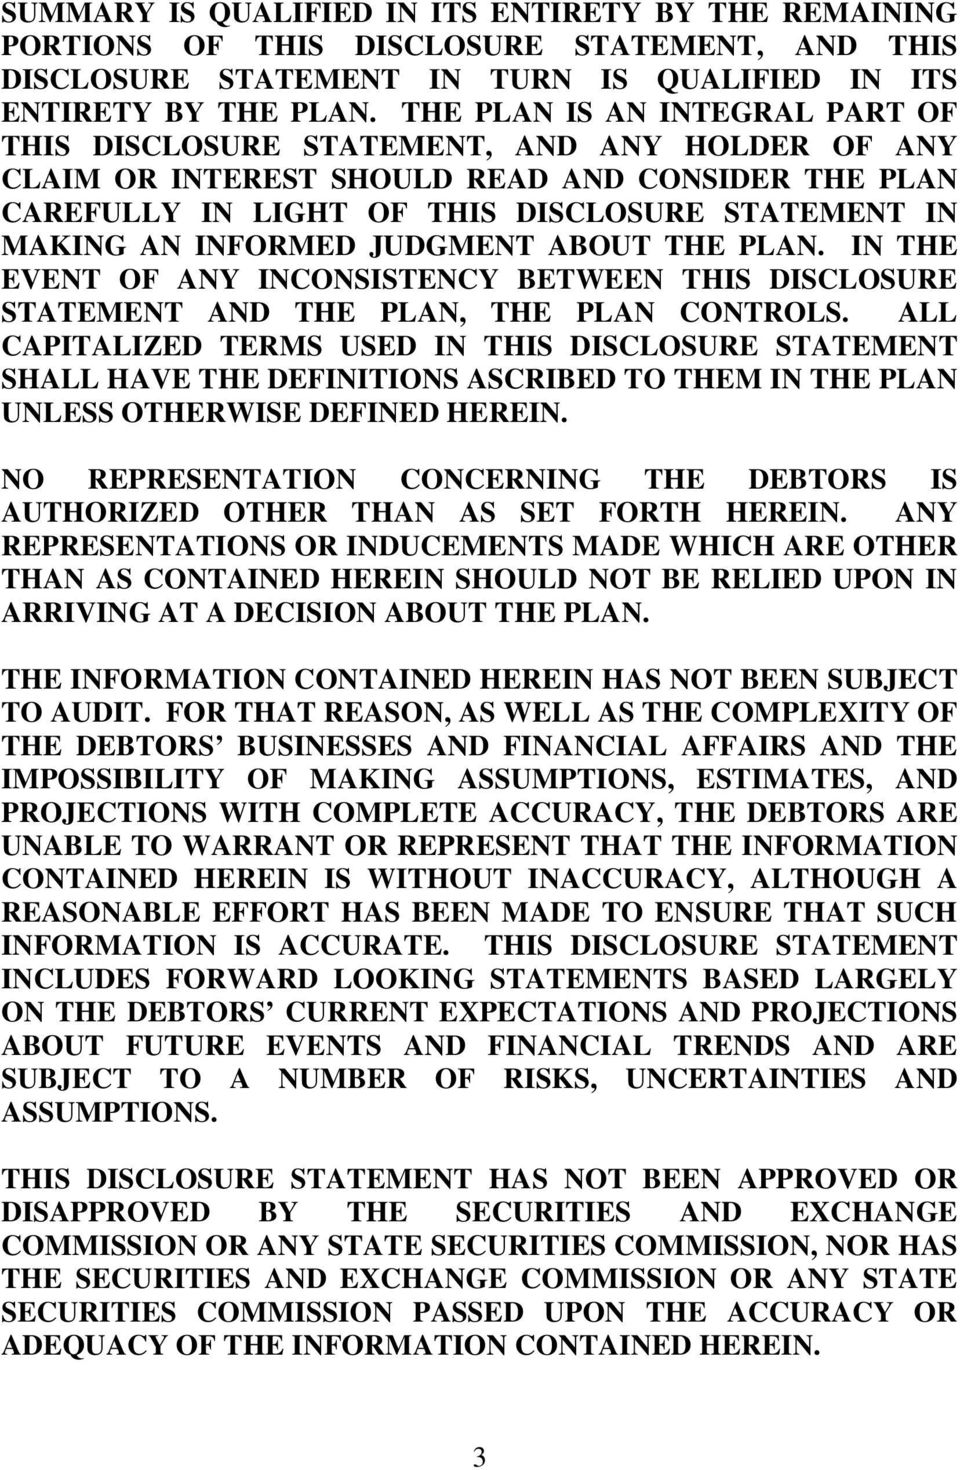 INFORMED JUDGMENT ABOUT THE PLAN. IN THE EVENT OF ANY INCONSISTENCY BETWEEN THIS DISCLOSURE STATEMENT AND THE PLAN, THE PLAN CONTROLS.